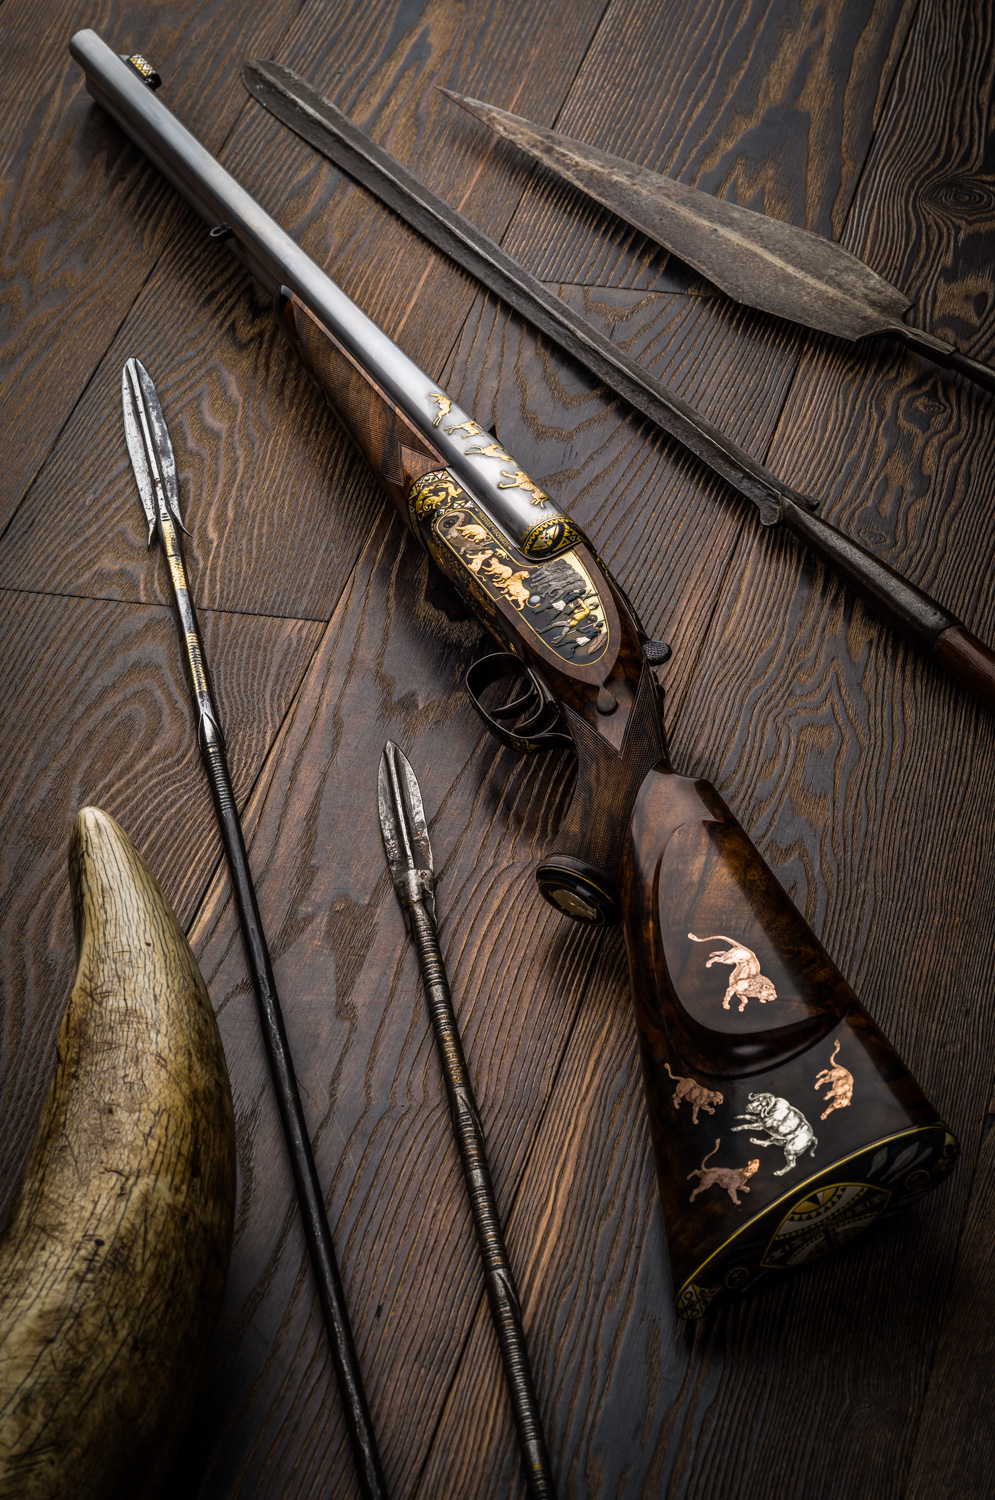 The Westley Richards 'Africa Rifle' - Finishing Continues with the First Assembly and the First Photo with The India Rifle.